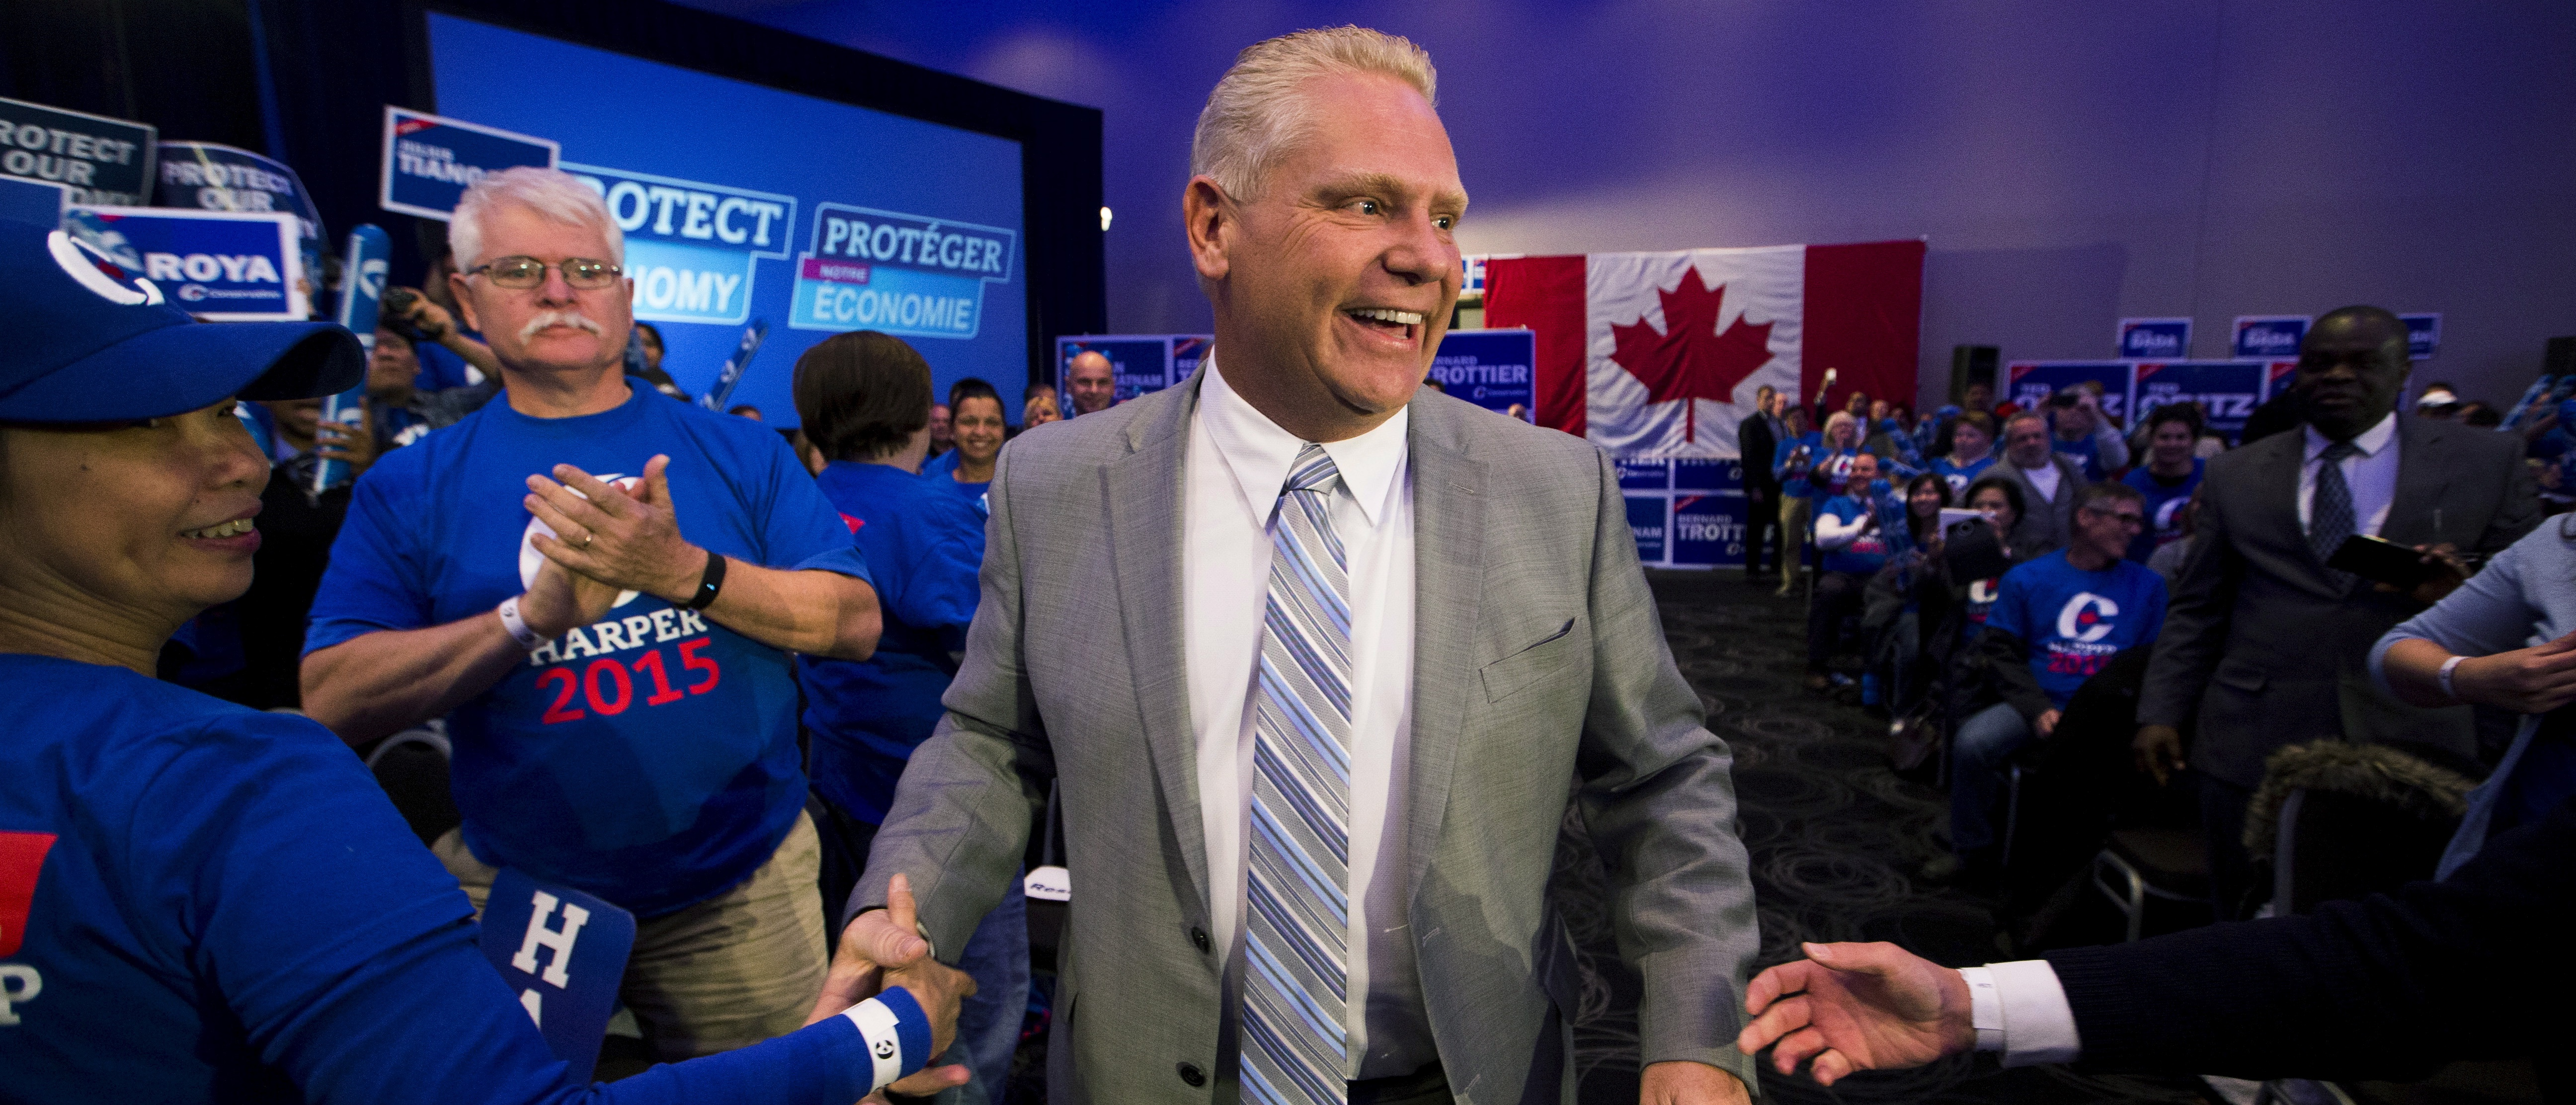 Former Toronto city councillor Doug Ford, brother to late Toronto Mayor Rob Ford, arrives at s Stephen Harper' rally in Toronto, Ontario, October 17, 2015. REUTERS/Mark Blinch